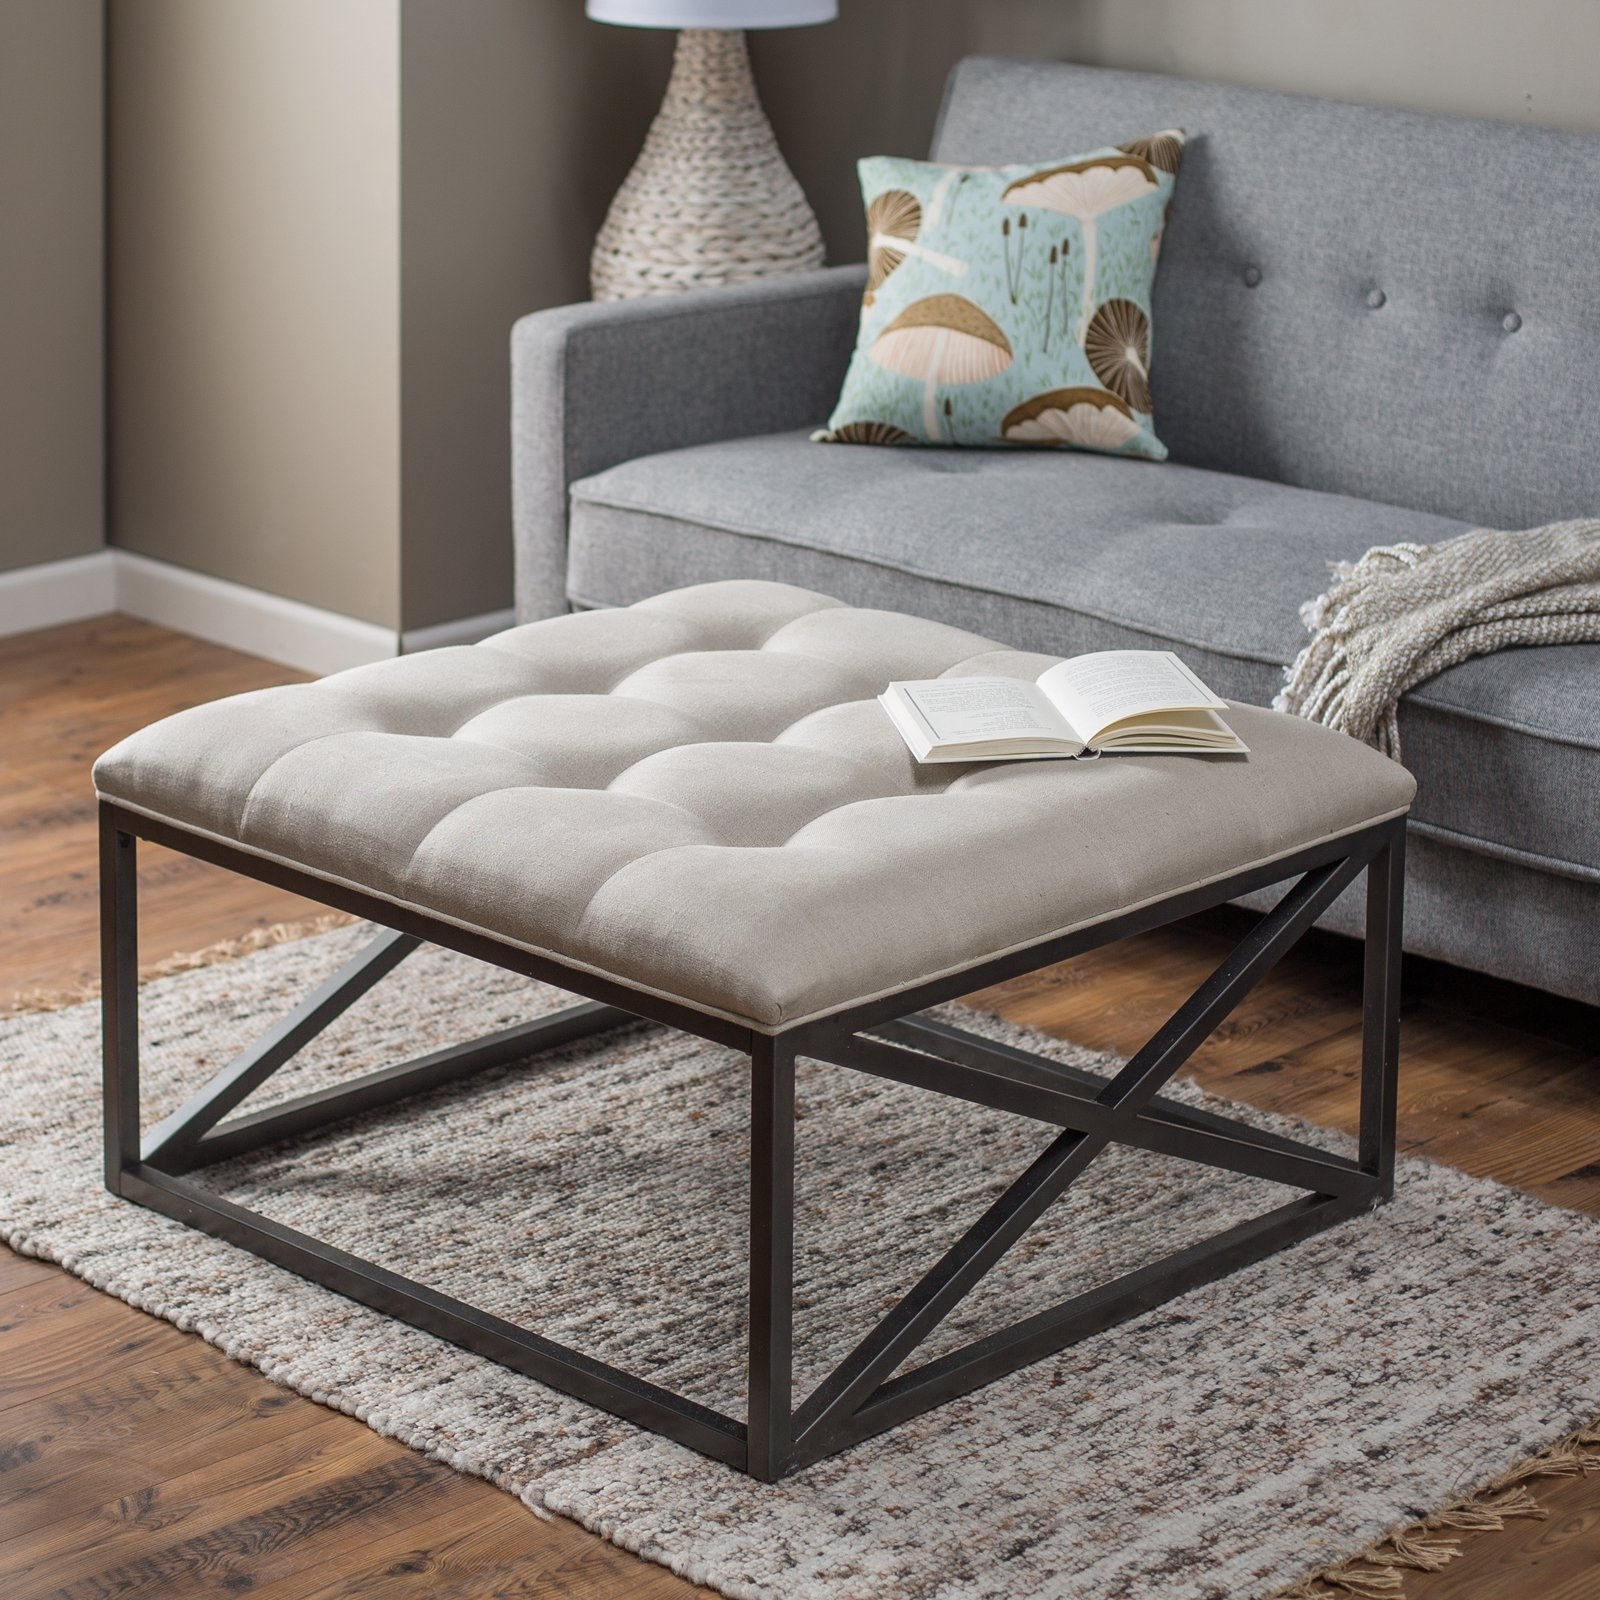 Belham Living Grayson Tufted Coffee Table Ottoman | Hayneedle for Round Button Tufted Coffee Tables (Image 3 of 30)